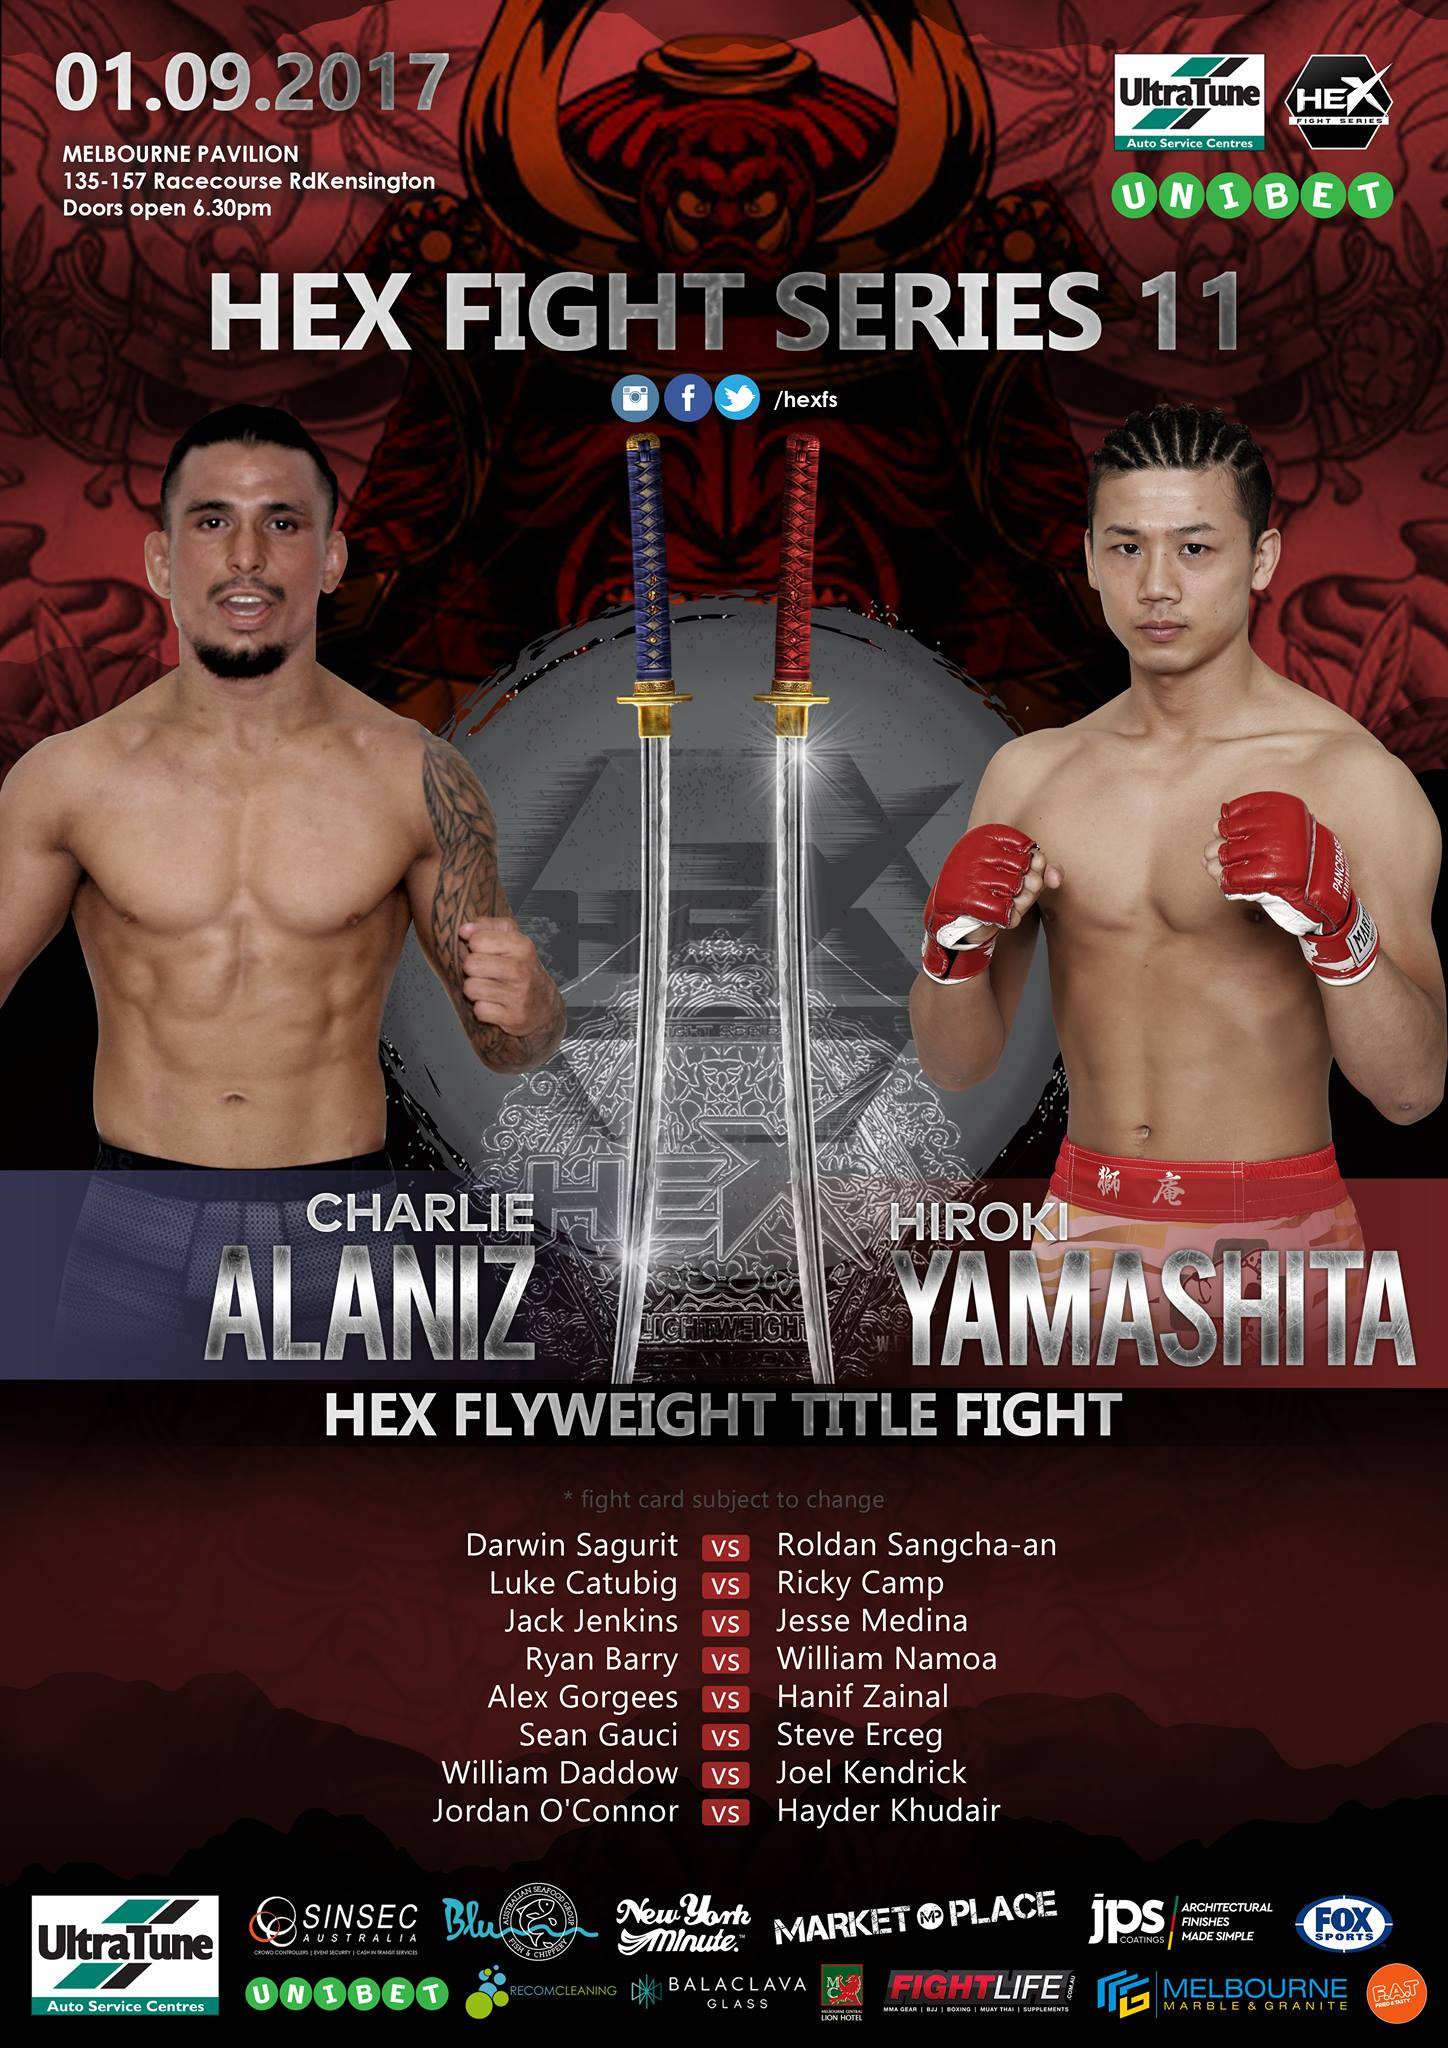 HEX FIGHT SERIES 11